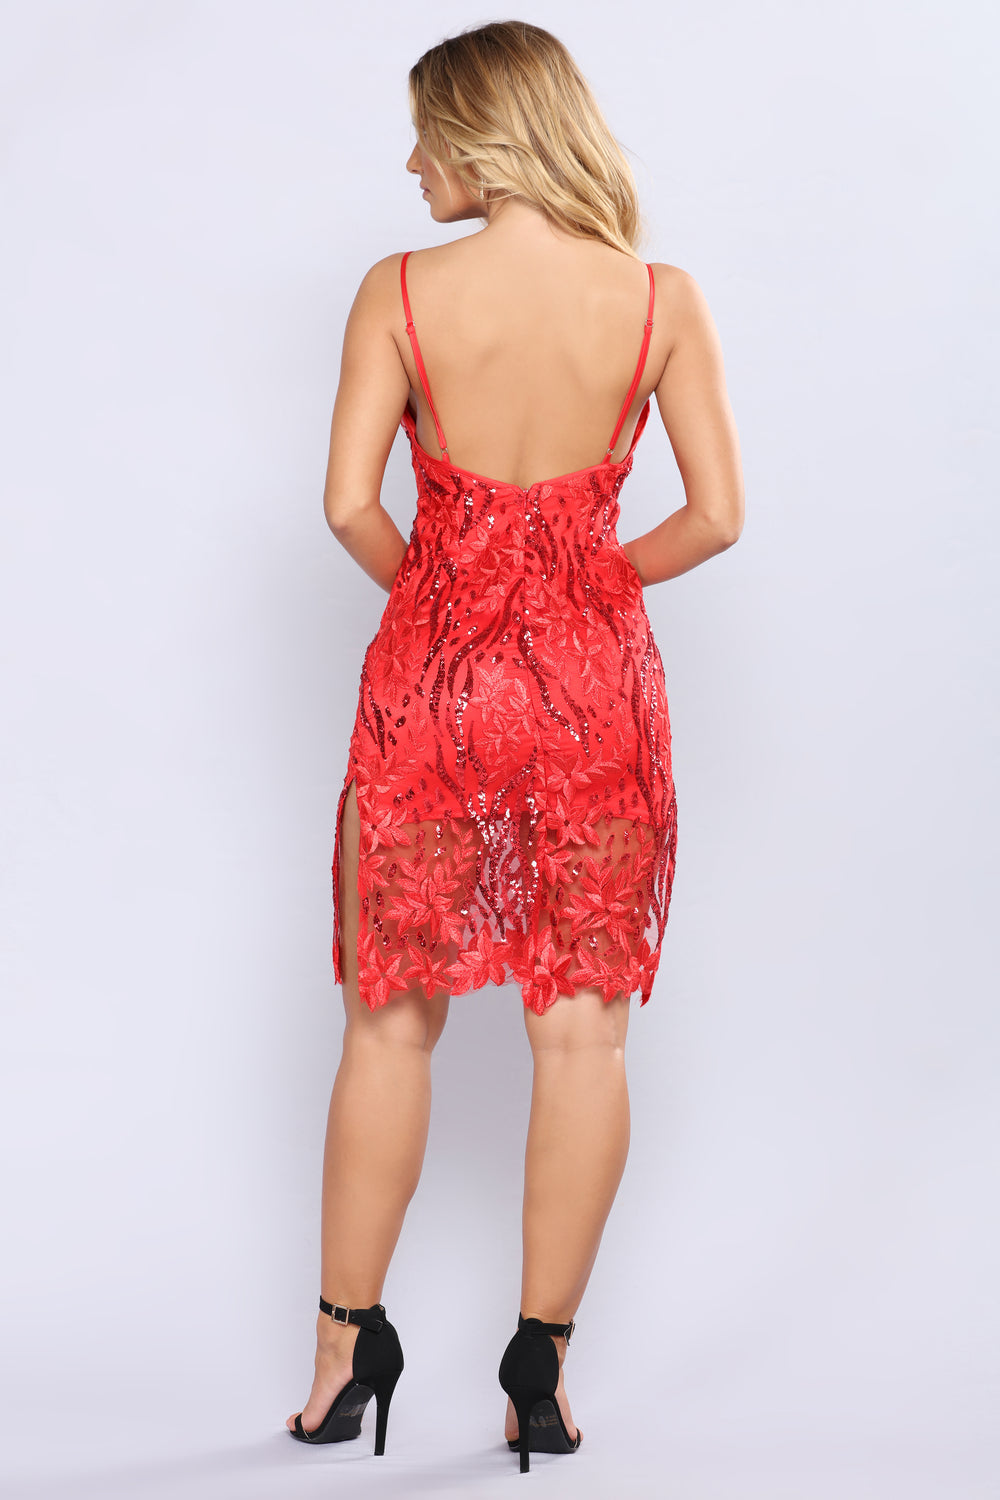 Sequin Me Out Dress - Red